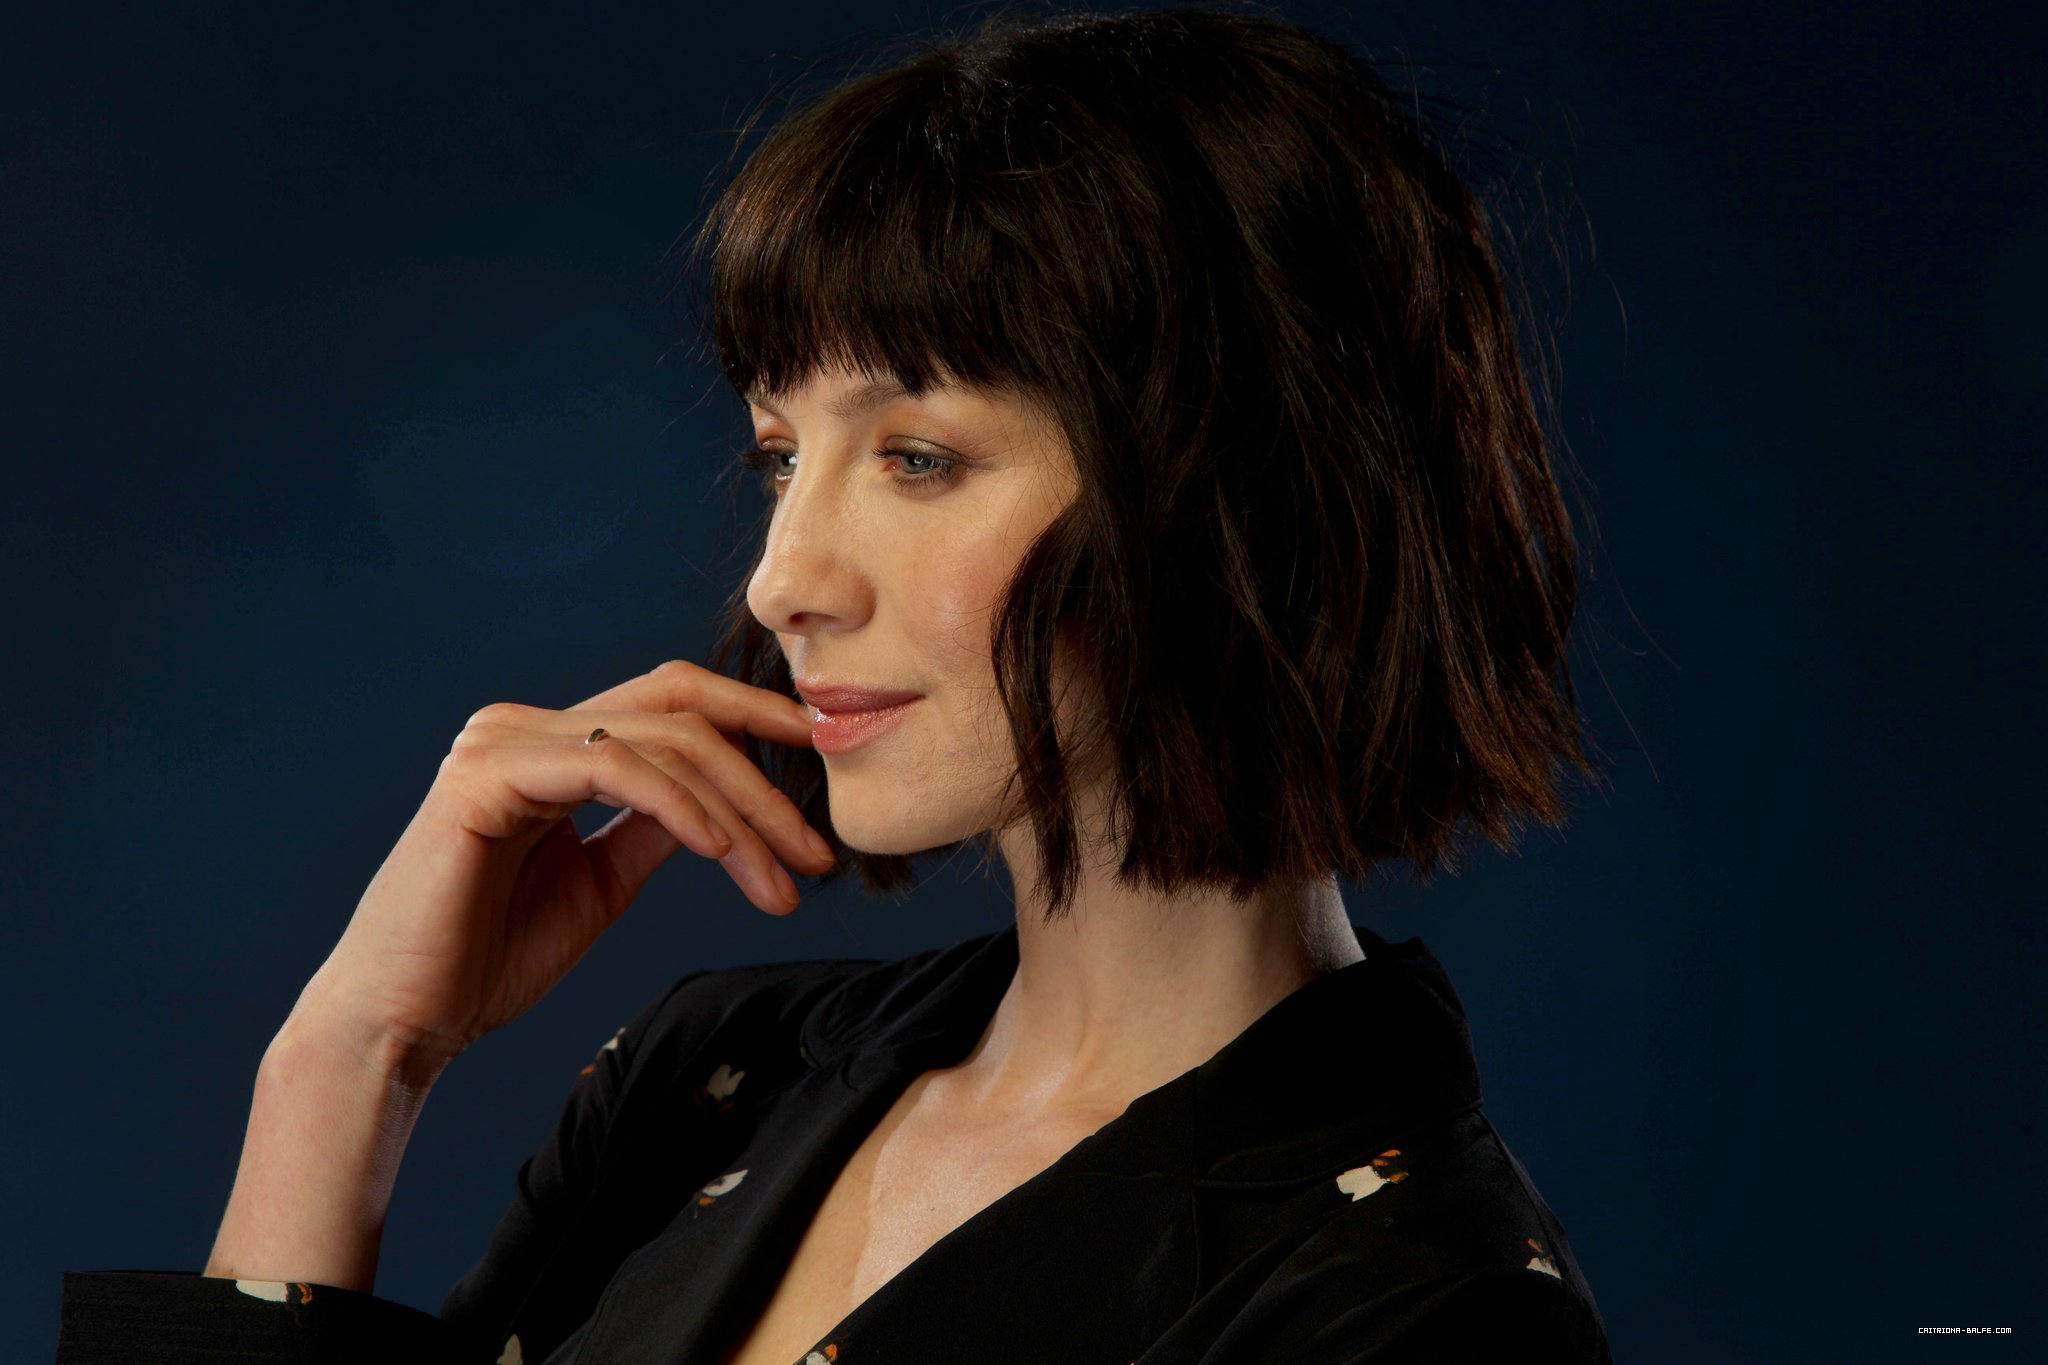 Video Caitriona Balfe nudes (12 foto and video), Tits, Leaked, Instagram, cameltoe 2019